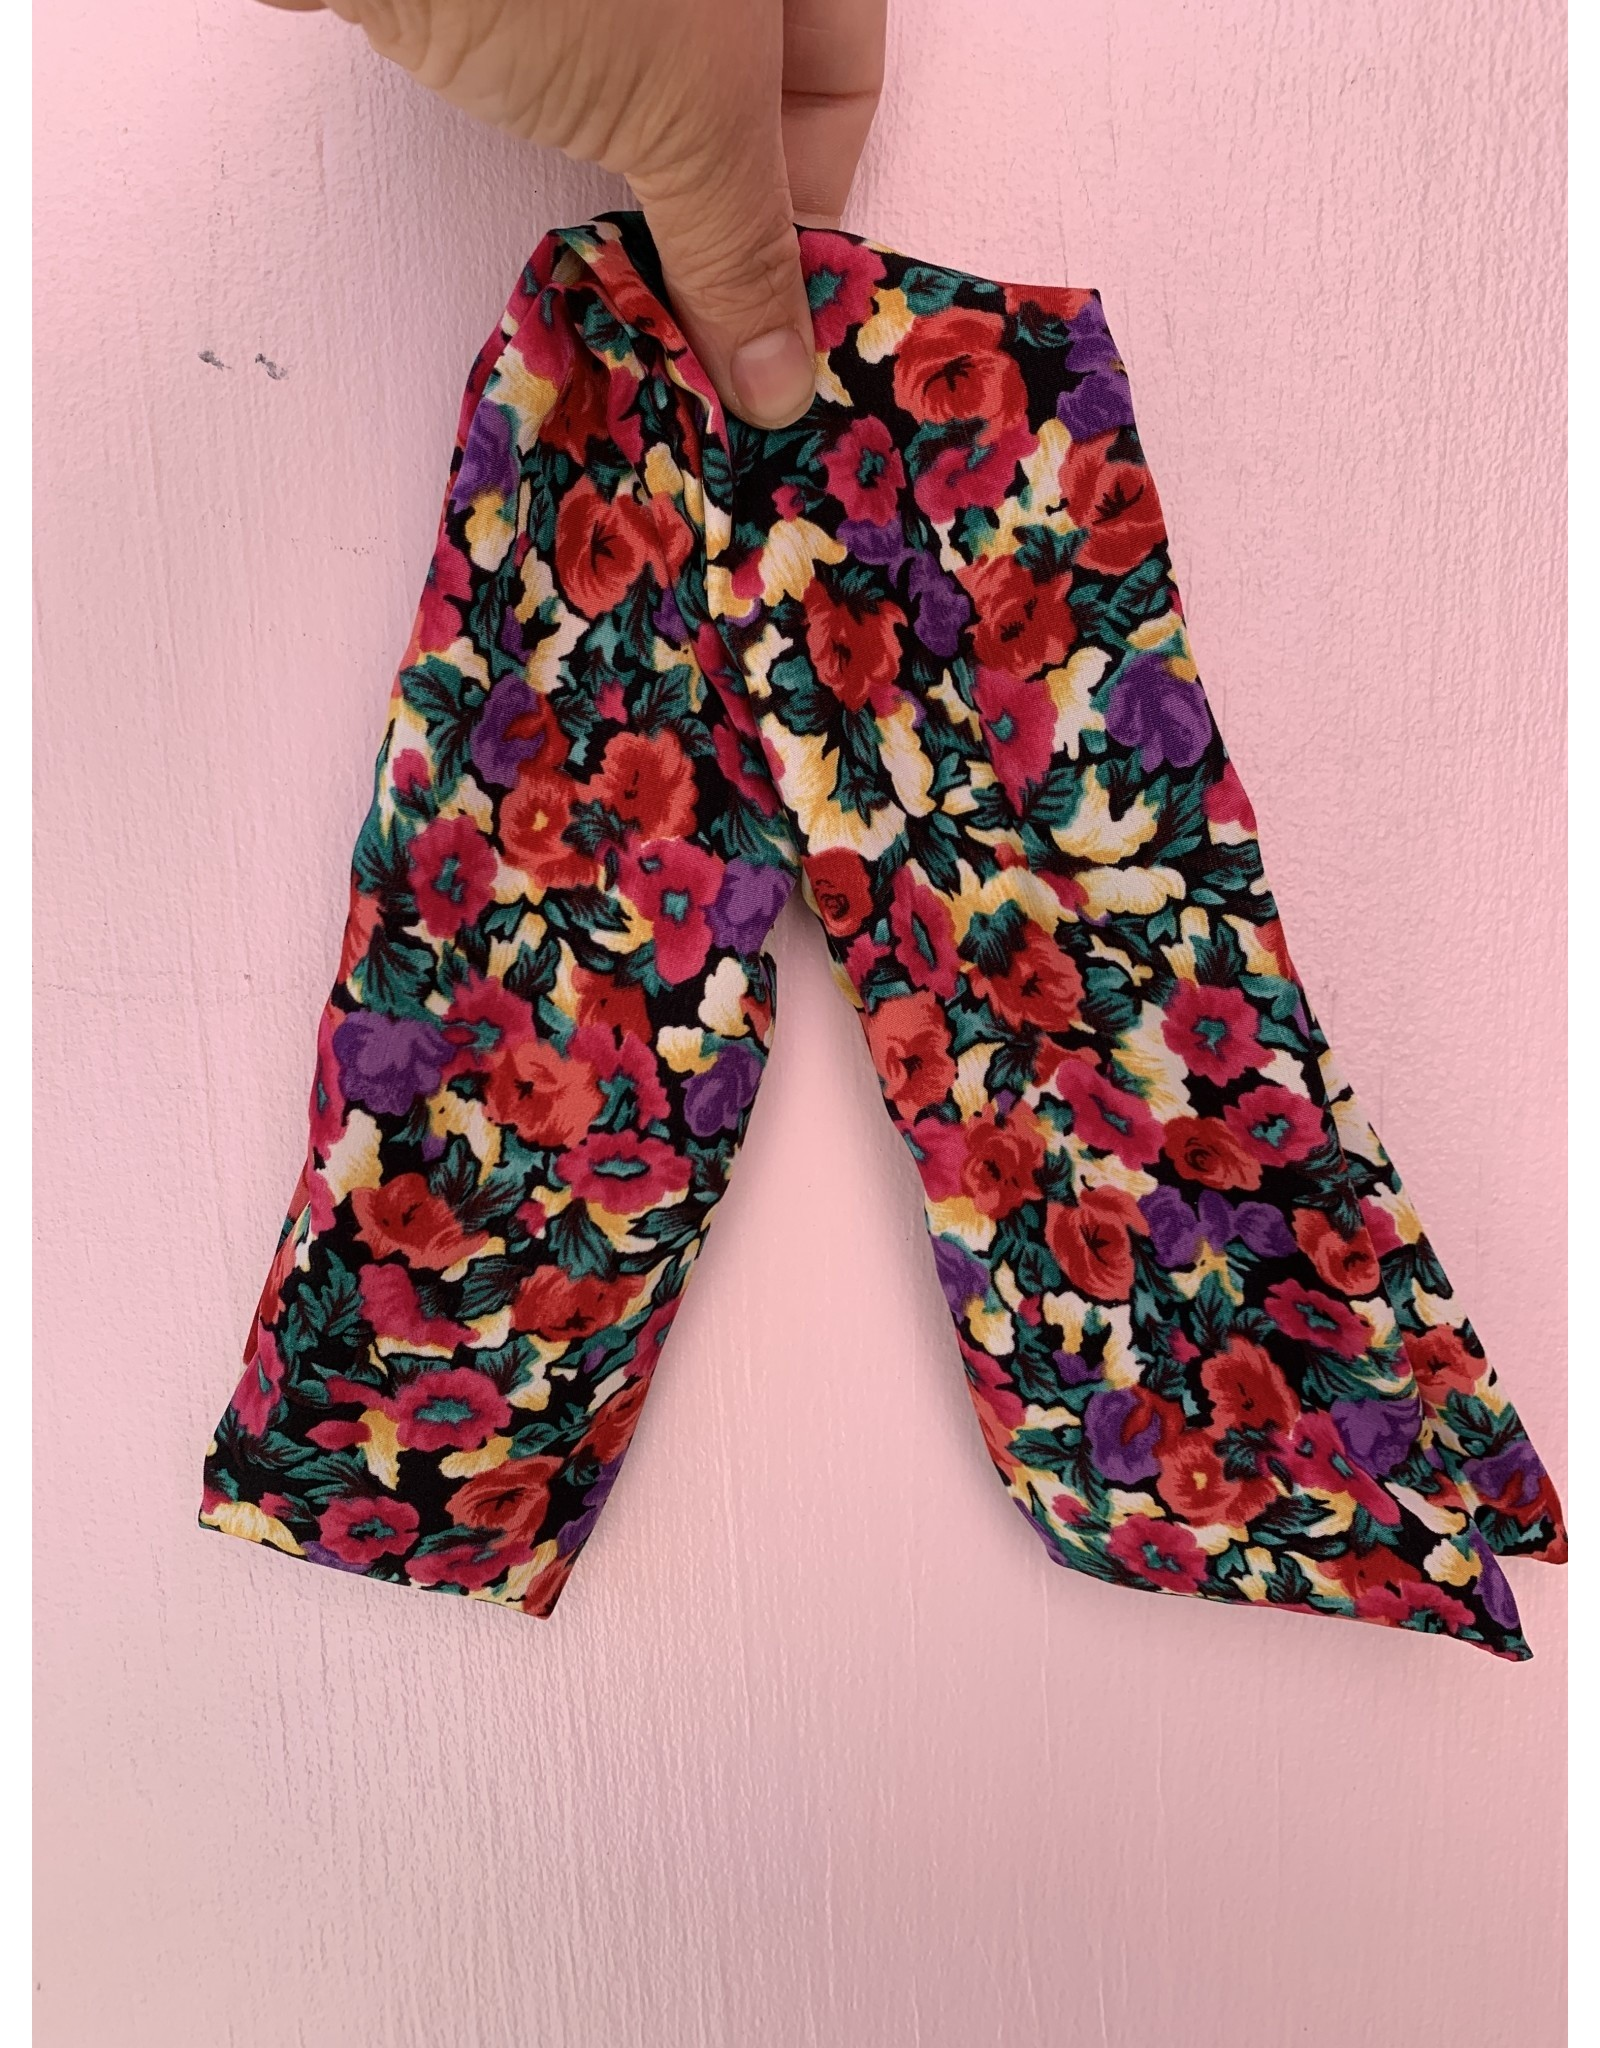 Silk Wired Headscarf in Red and Black Floral